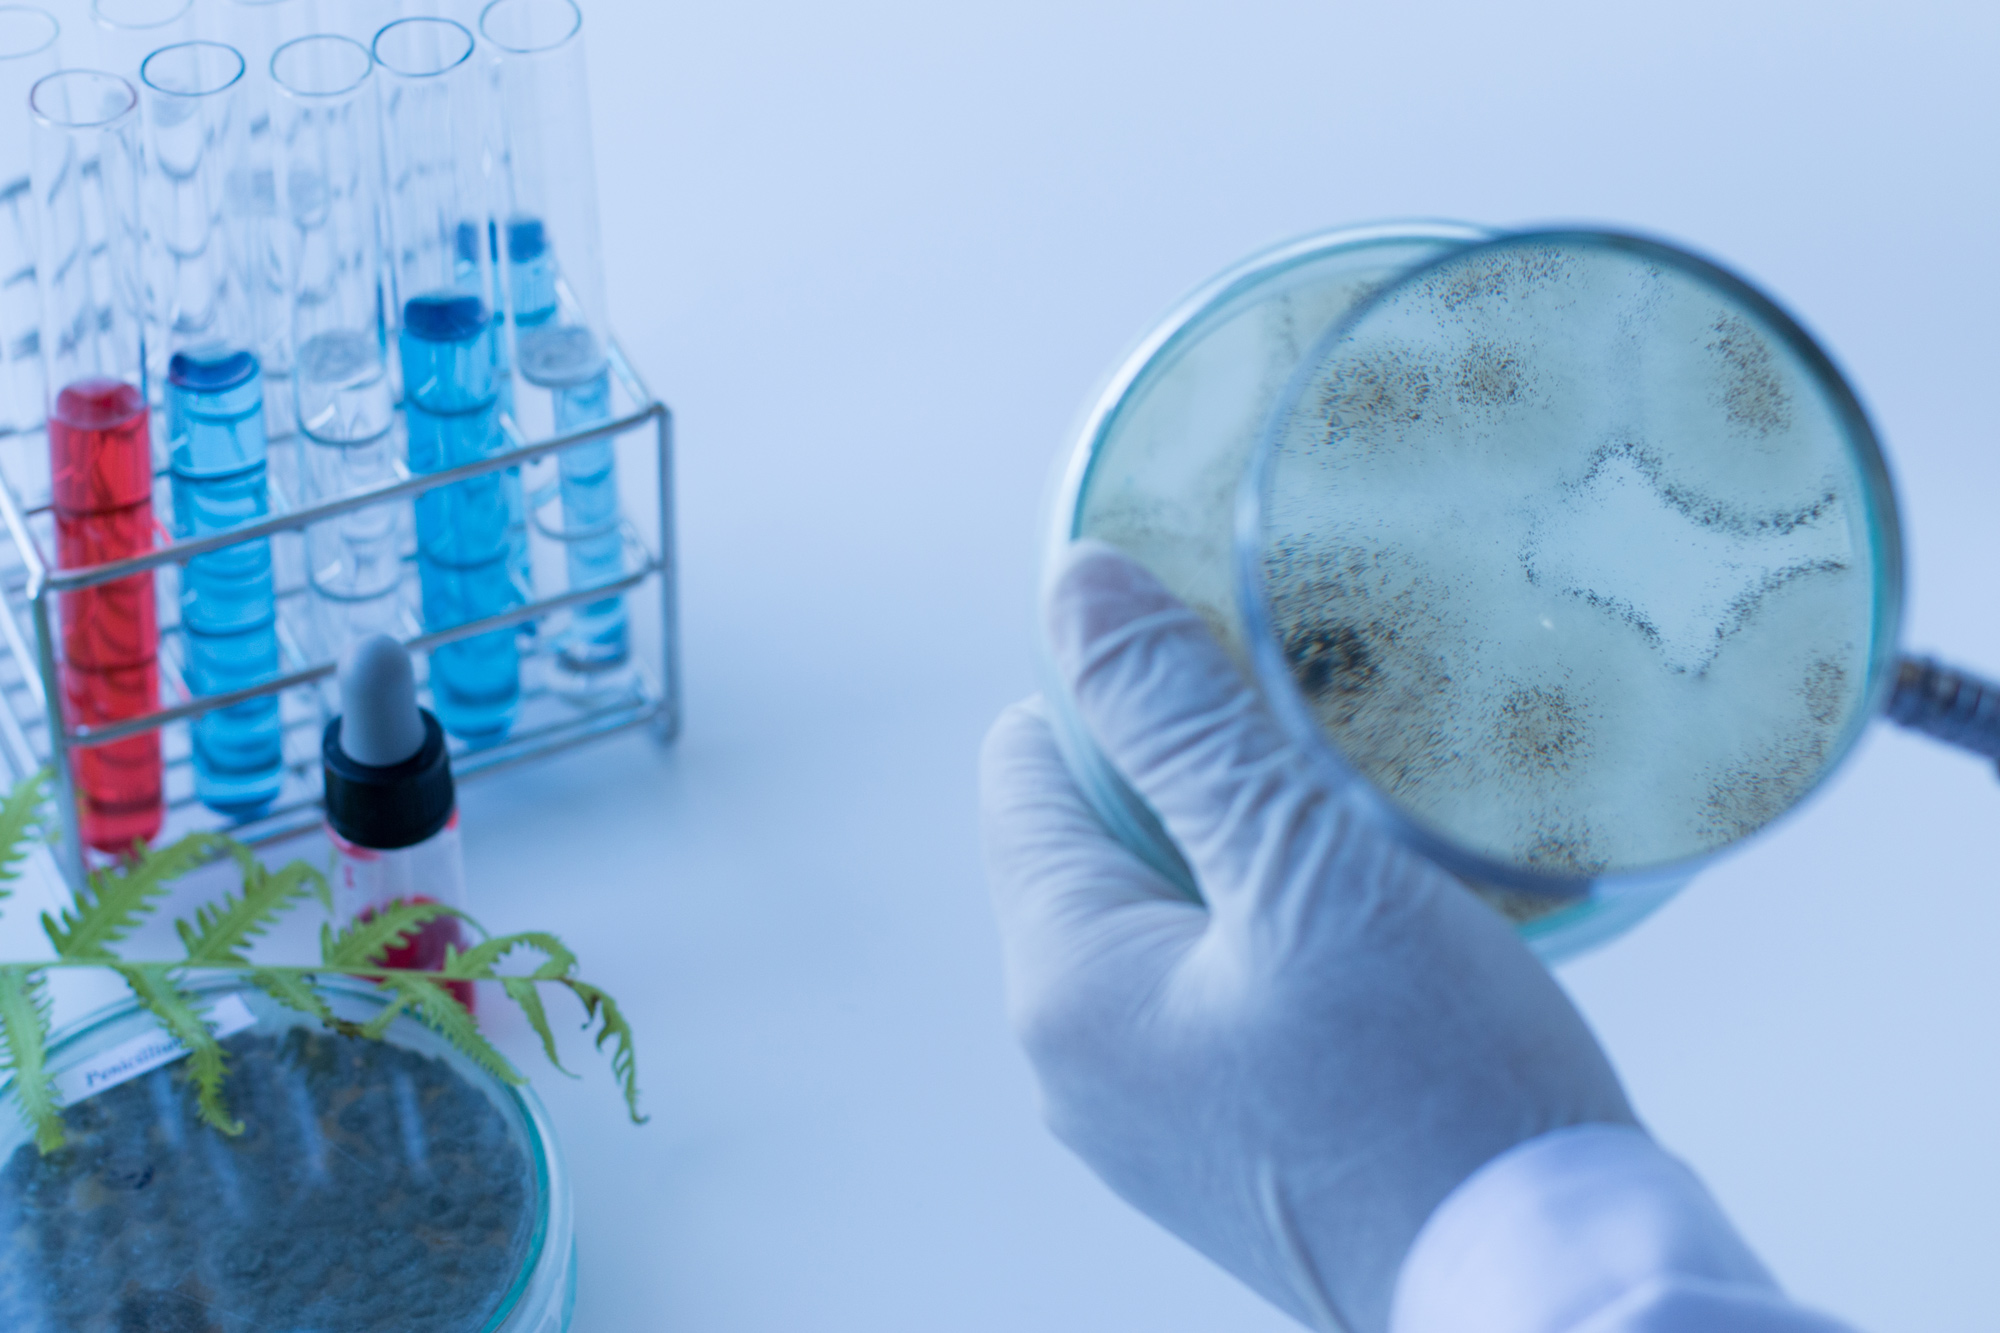 Bacteria Mould & Spore Removal